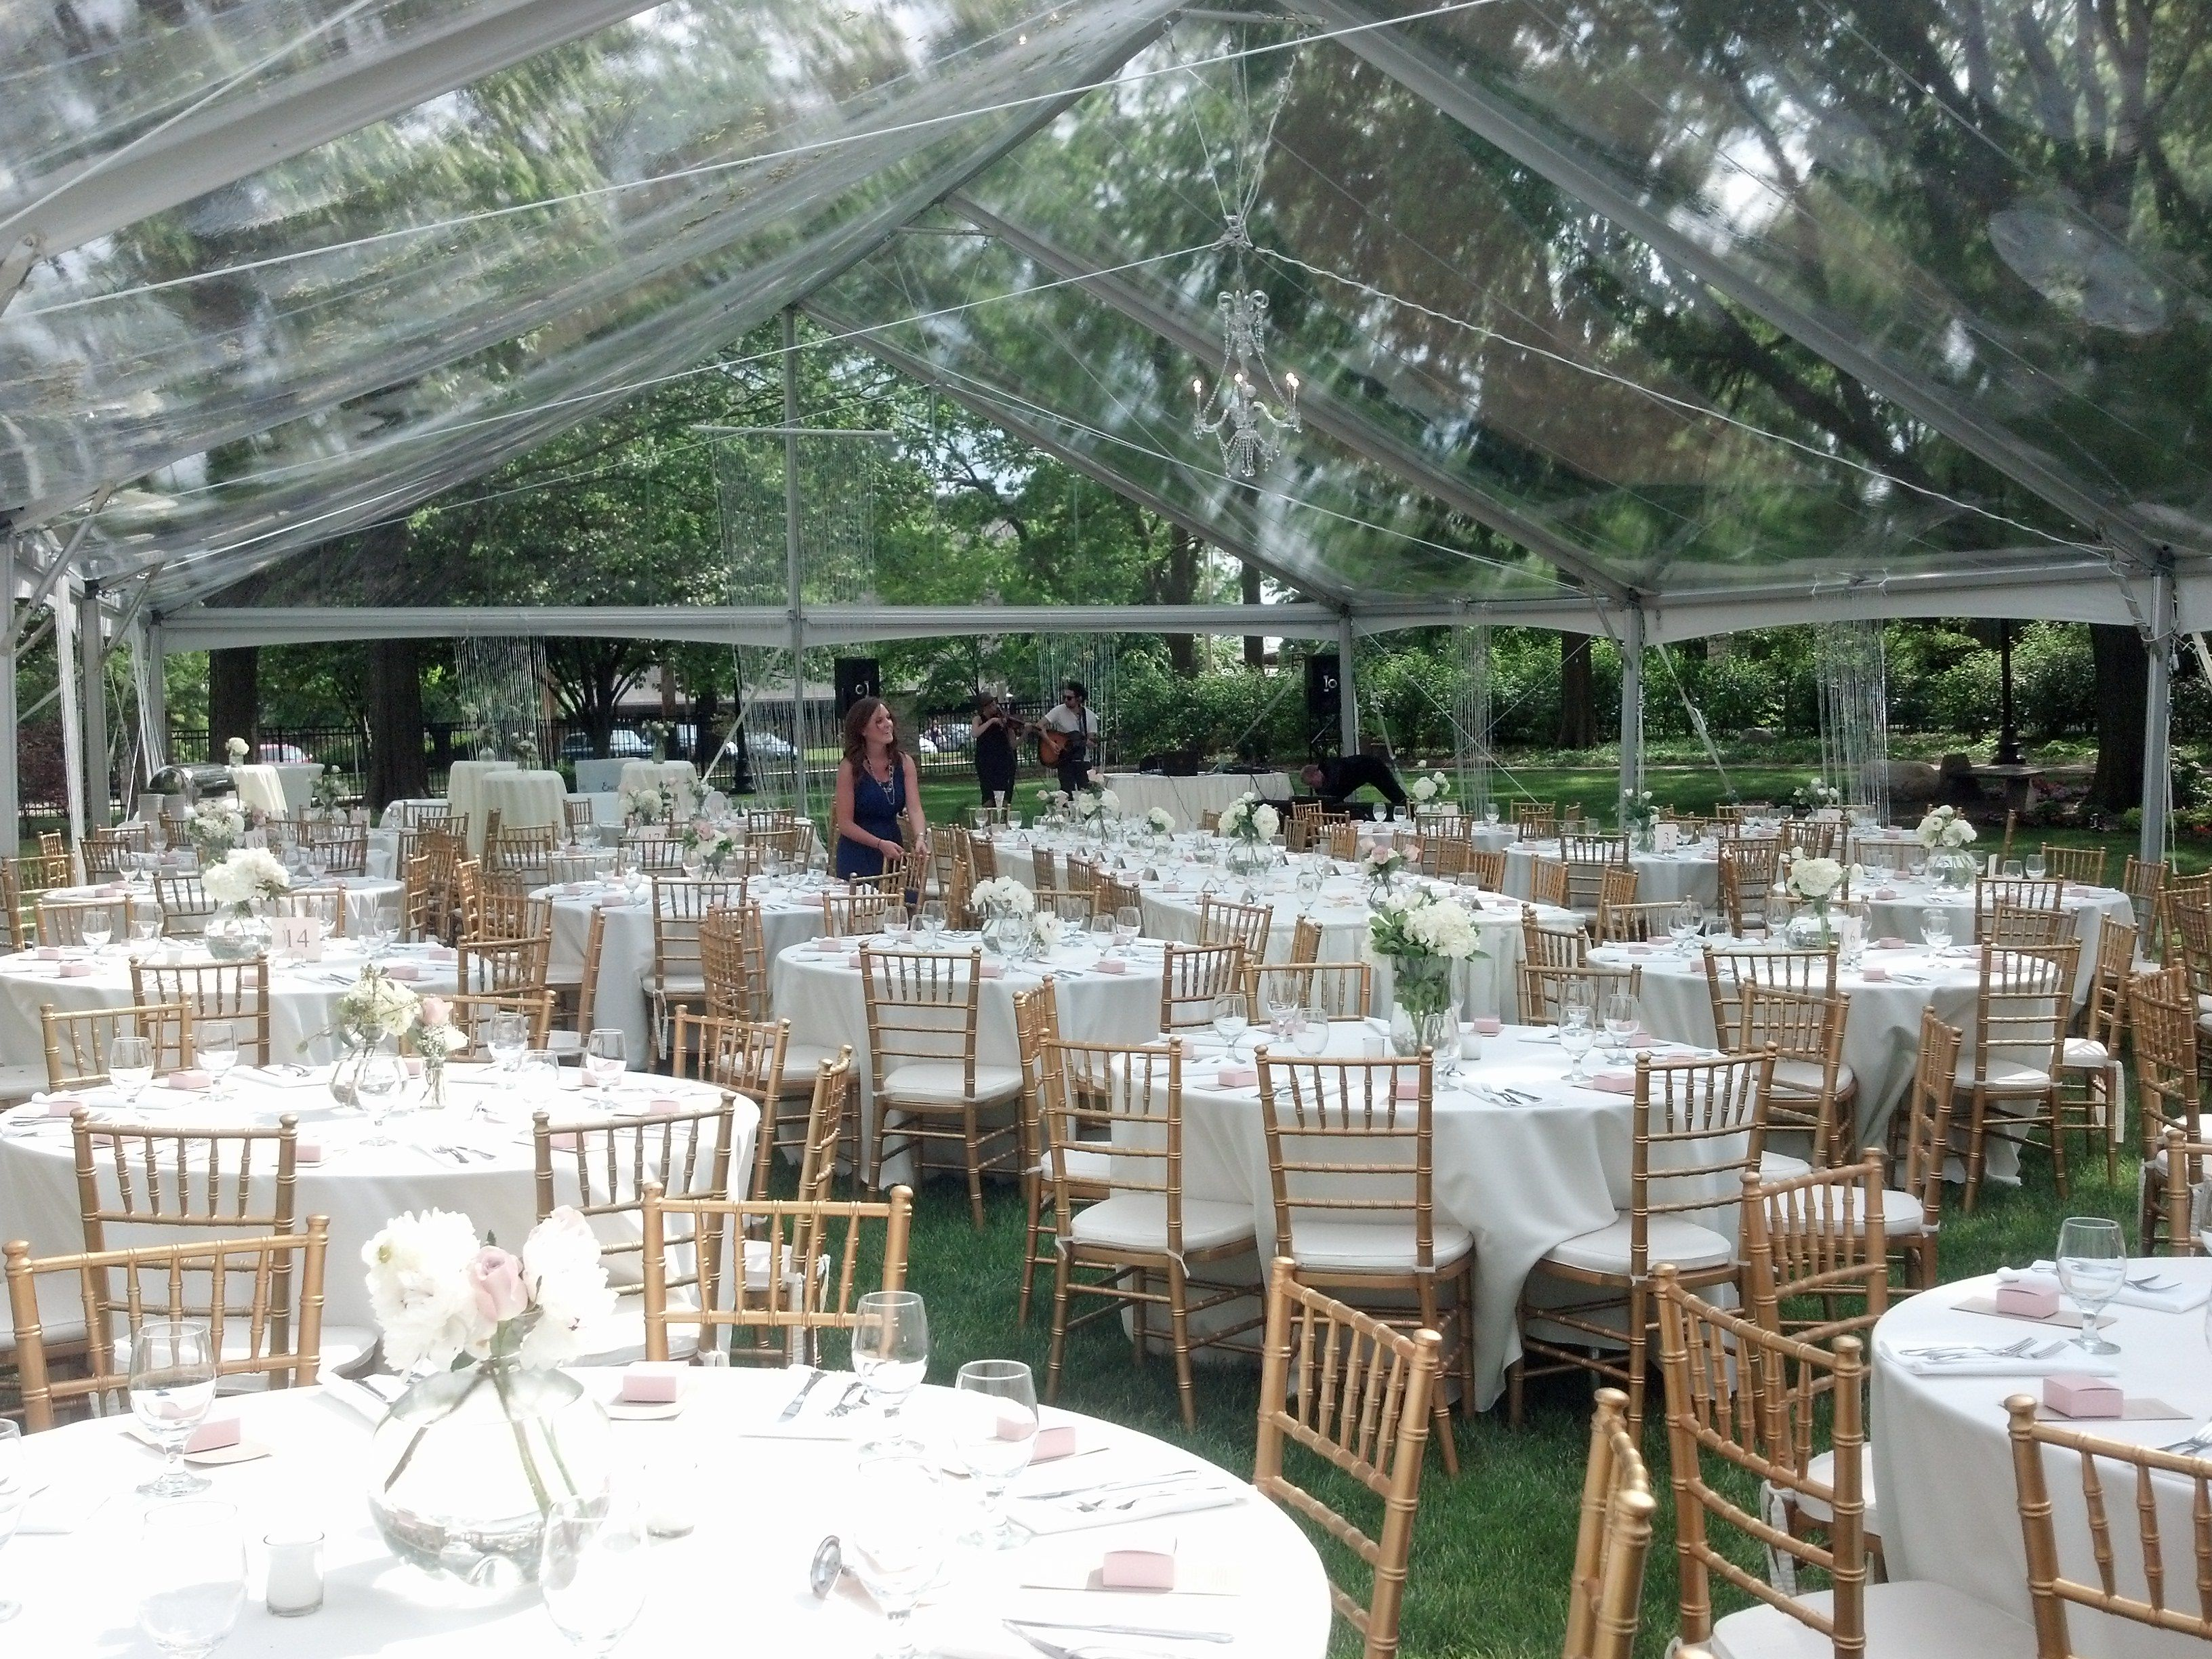 40x80 Jumbo Trac Clear Span Clear Top Tent w Ivory linens and